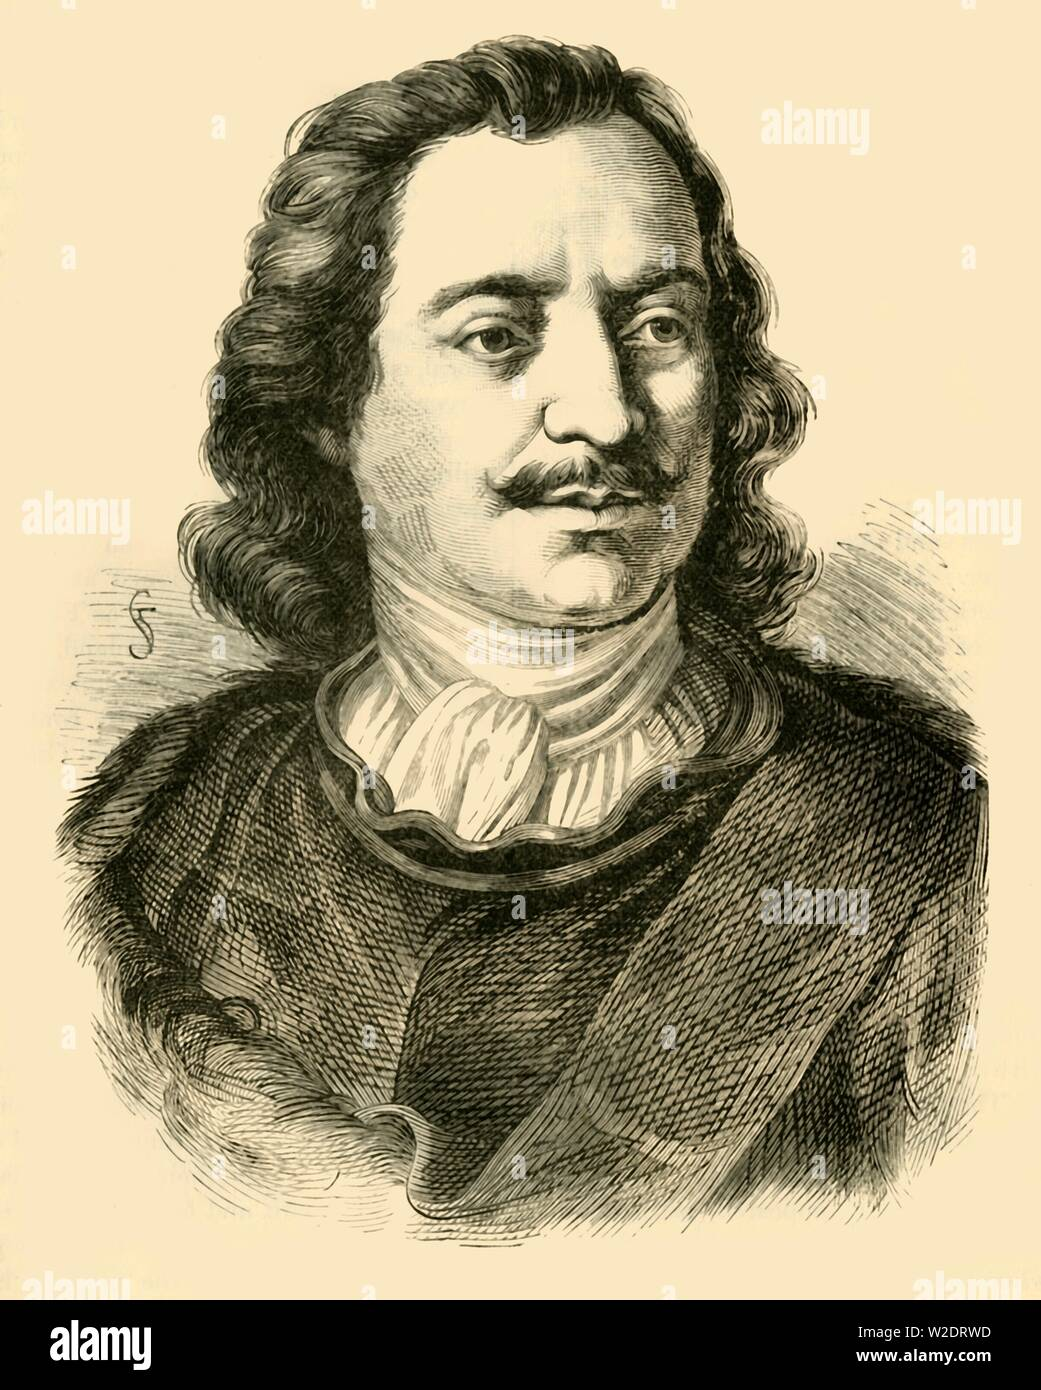 "'Peter the Great',c1710-1720, (1890). Peter the Great (1672-1725) Russian Tsar who replaced traditional and medieval practices with more modern, scientific, Westernised and progressive ideas based on the Enlightenment. From ""Cassell's Illustrated Universal History, Vol. IV - Modern History"", by Edmund Ollier. [Cassell and Company, Limited, London, Paris and Melbourne, 1890] - Stock Image"